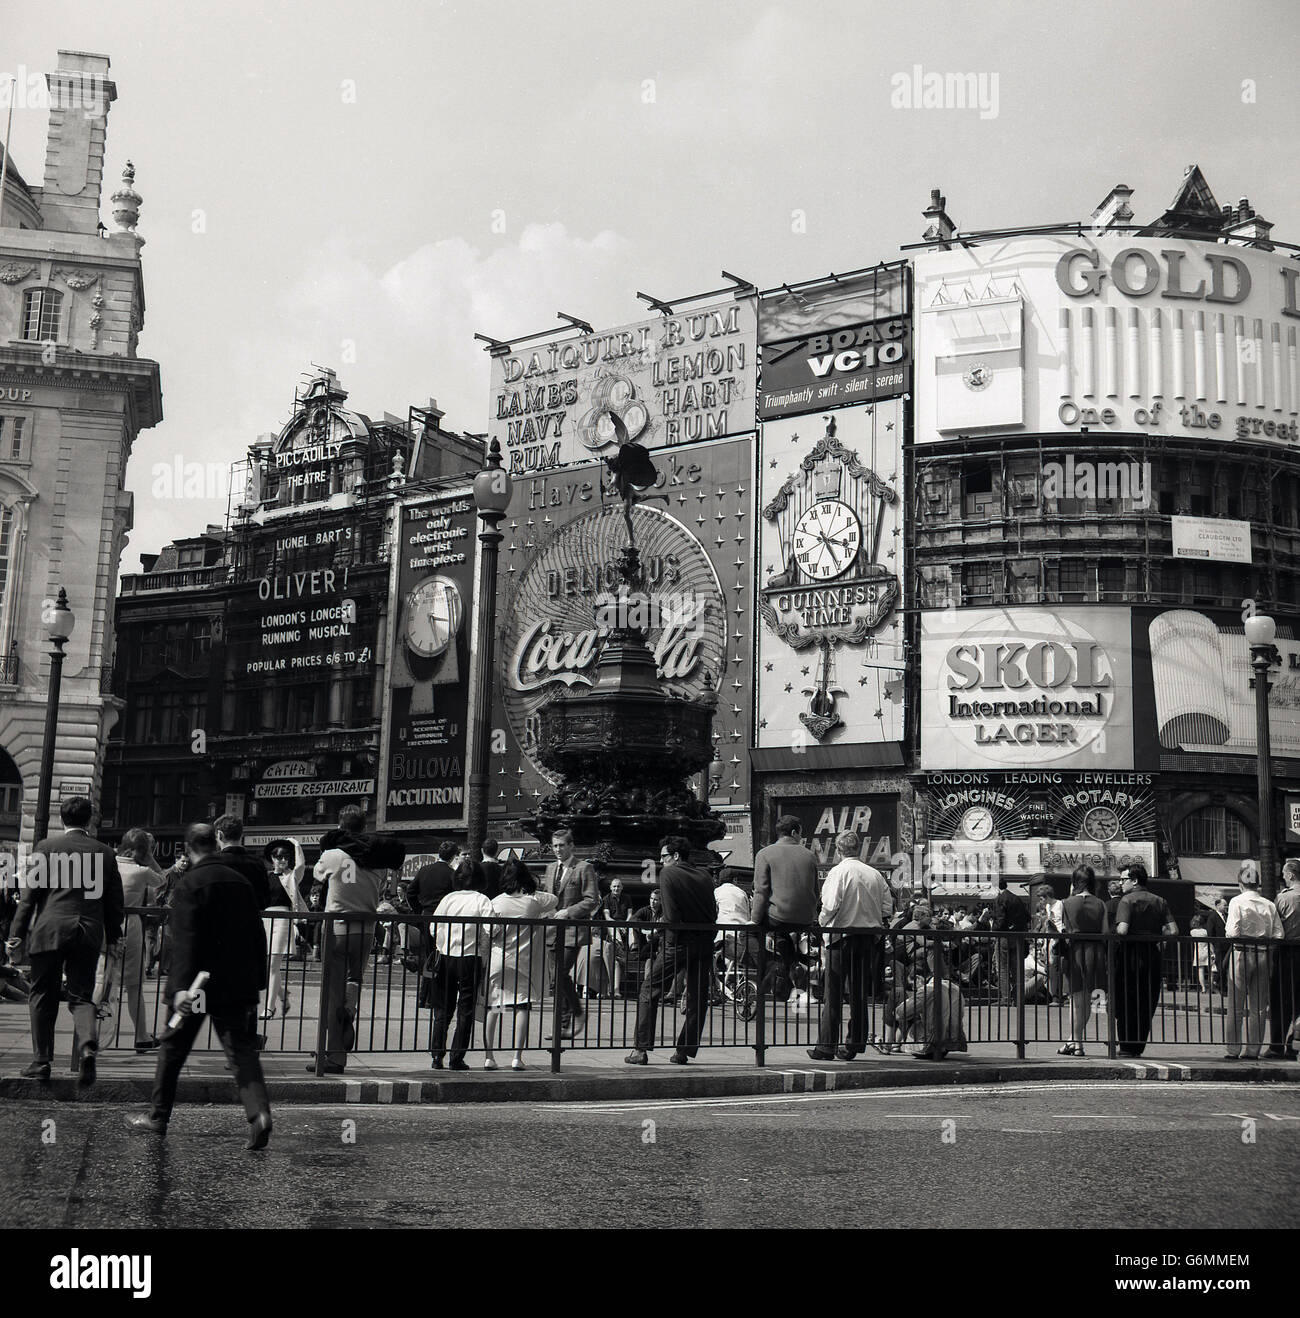 1950s, historical view of Piccadilly Circus, London, England. - Stock Image